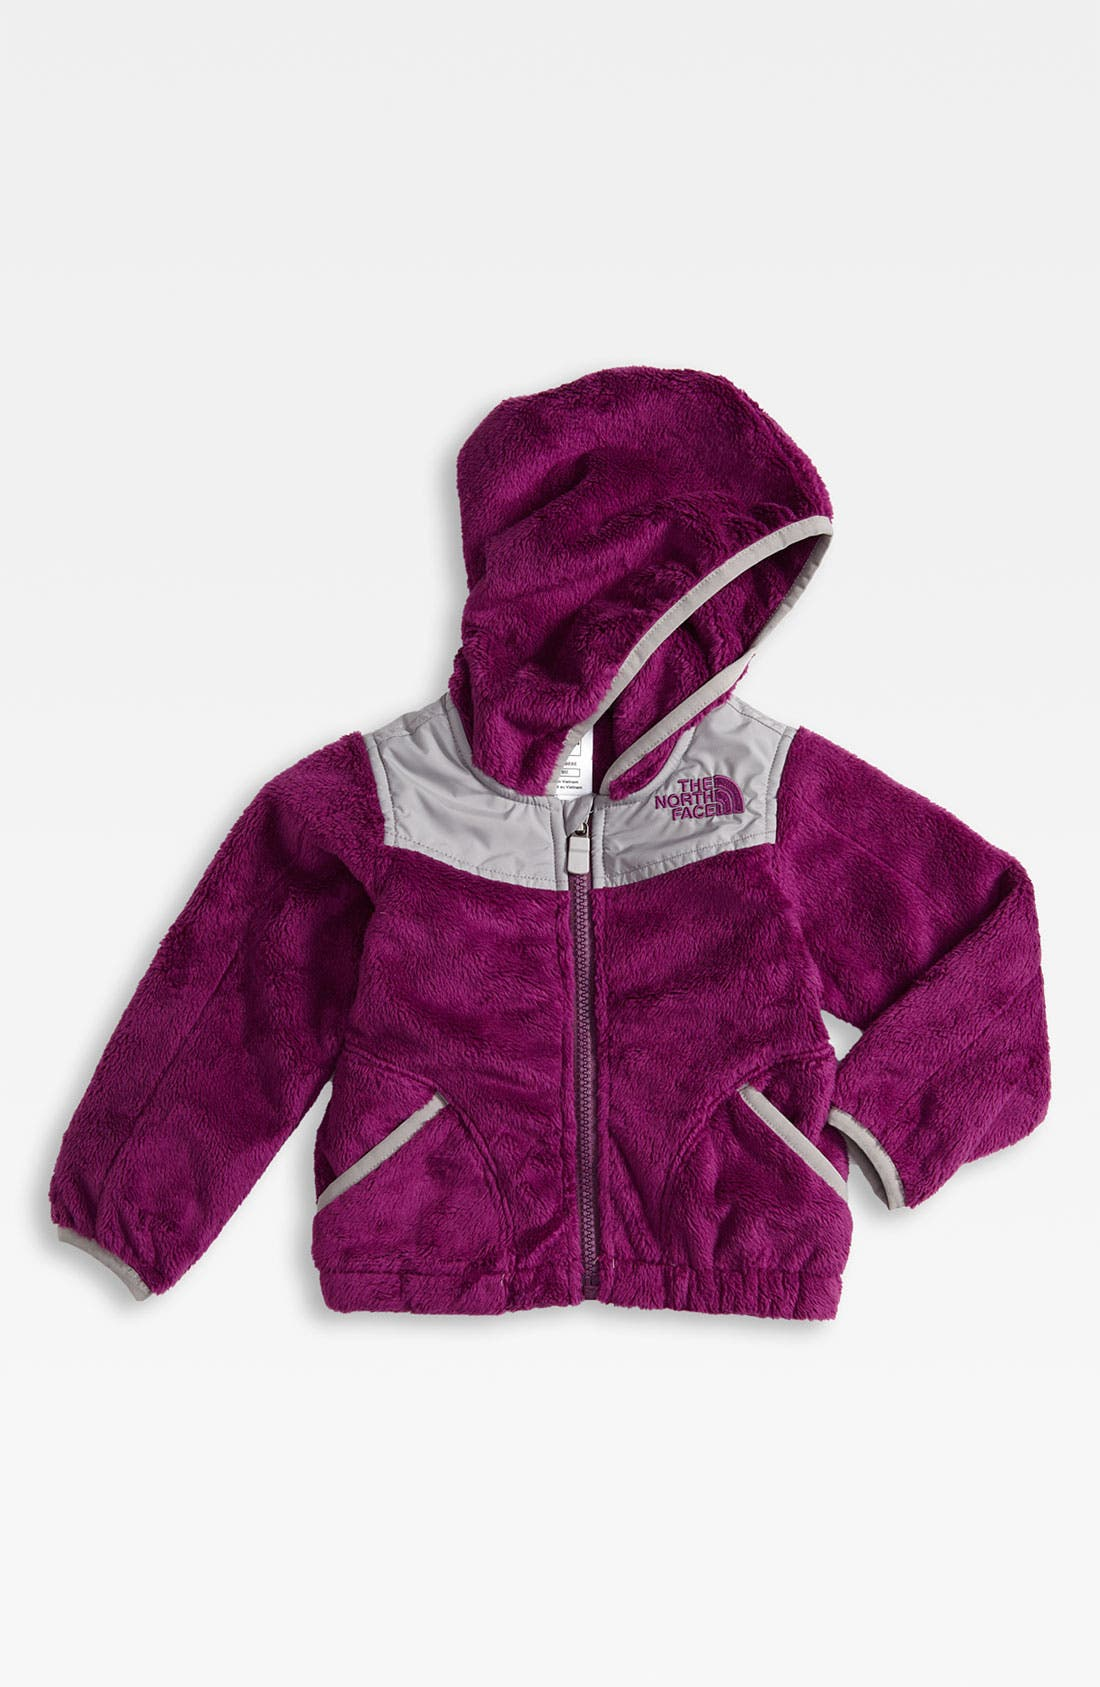 Main Image - The North Face 'Oso' Hooded Fleece Jacket (Baby)